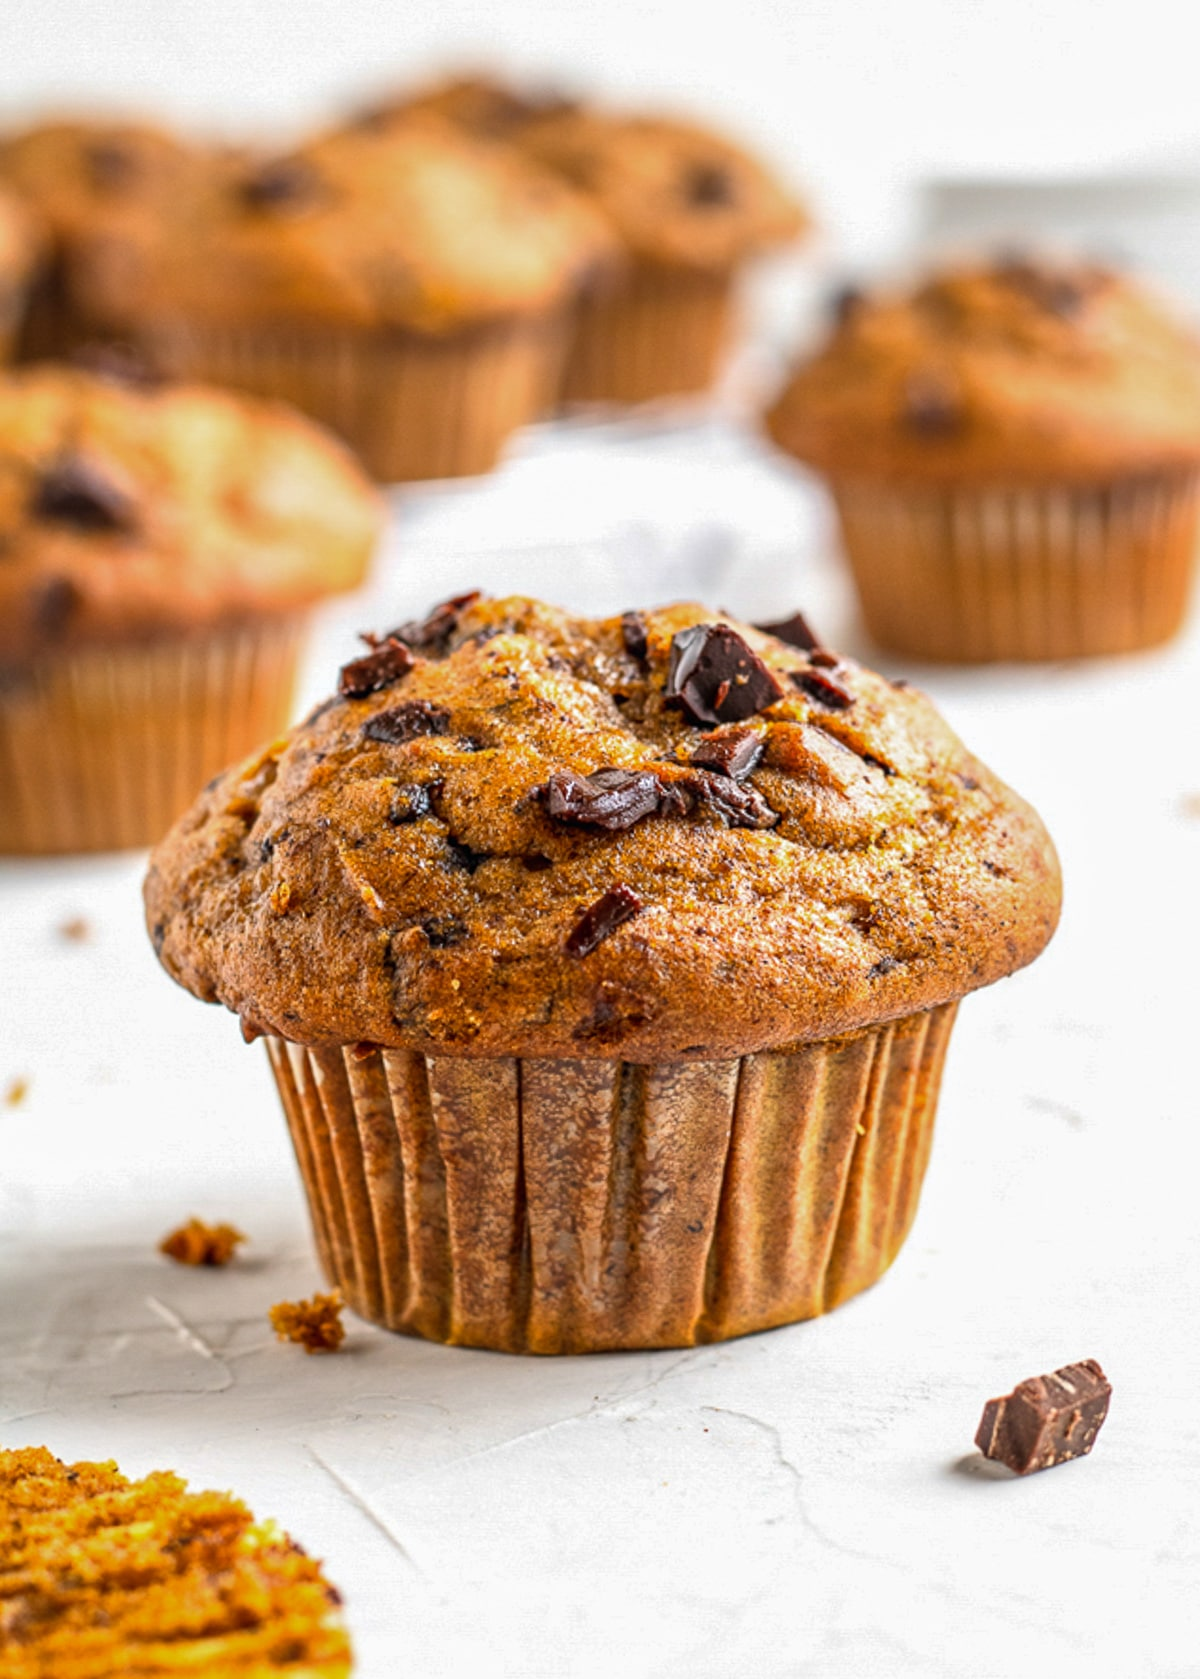 pumpkin banana muffin with more muffins in the background and chocolate scattered around them